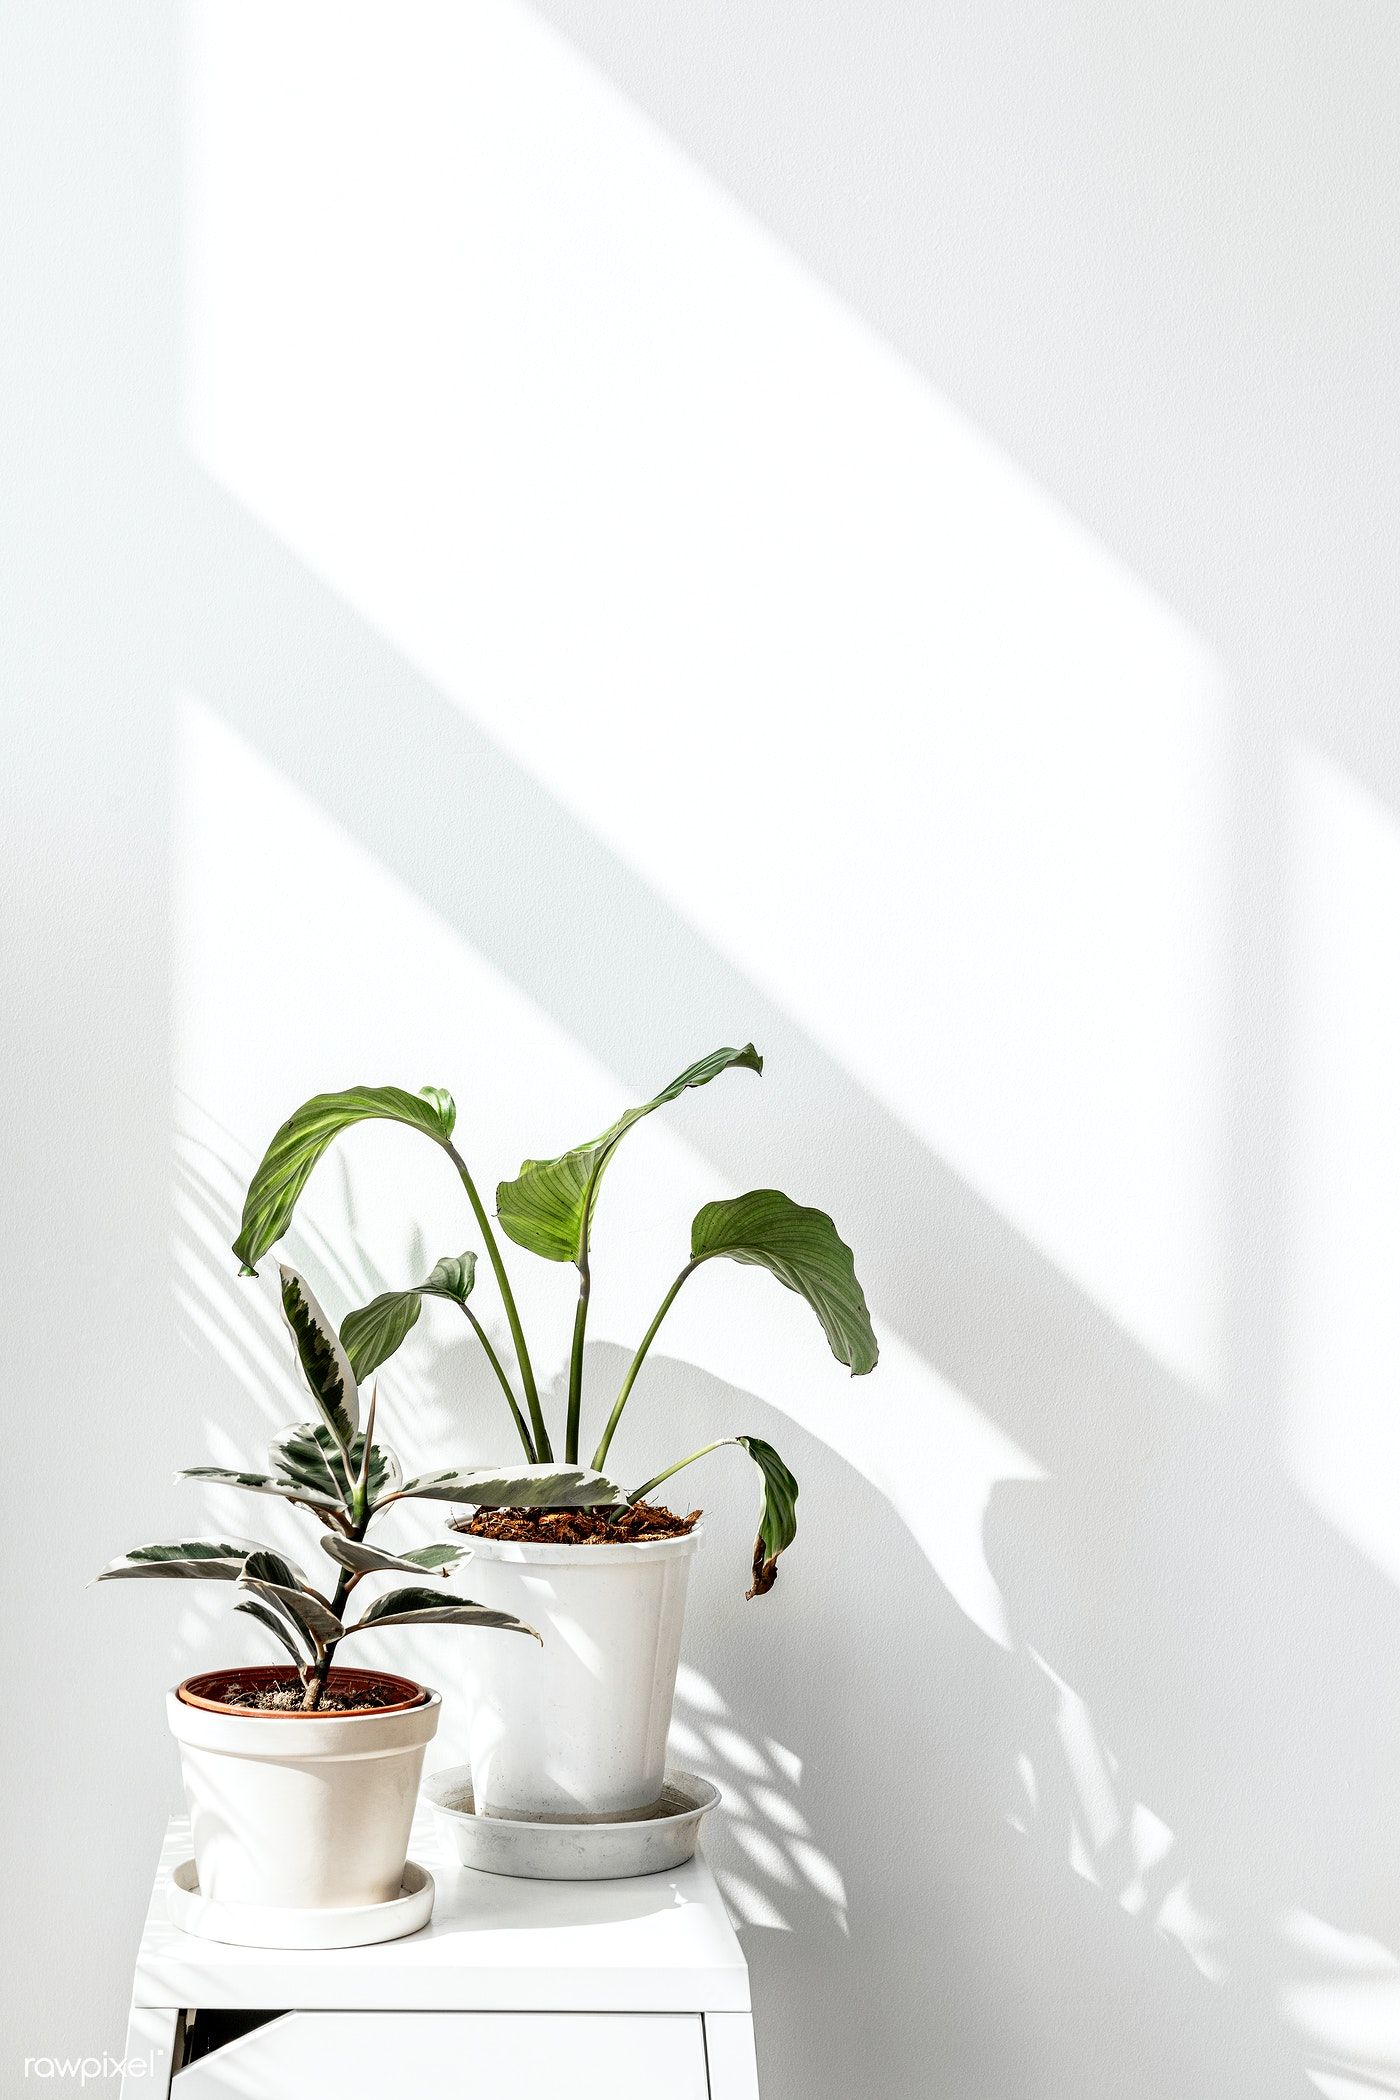 Download premium image of Tropical plants by a white wall with window